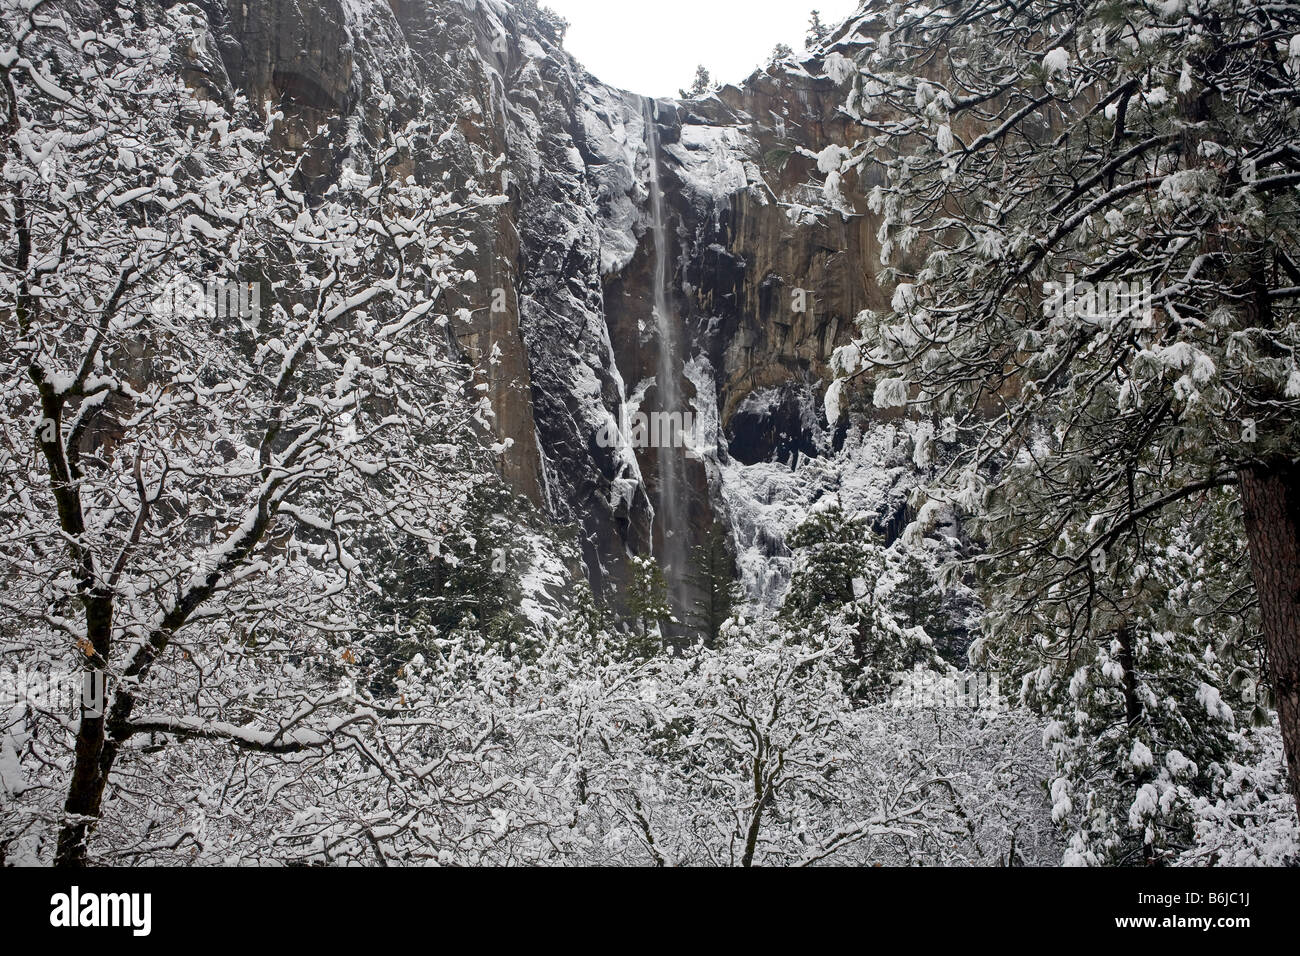 CALIFORNIA -  Bridalveil Falls after a winter snow storm in the Yosemite Valley area of Yosemite National Park. Stock Photo